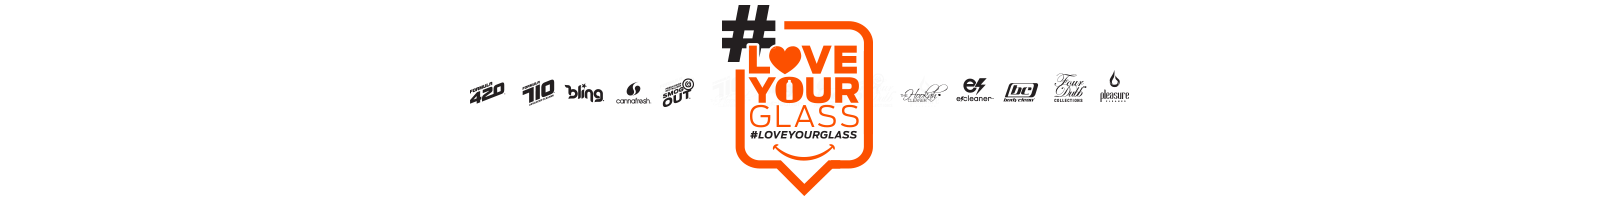 LOVEYOURGLASS